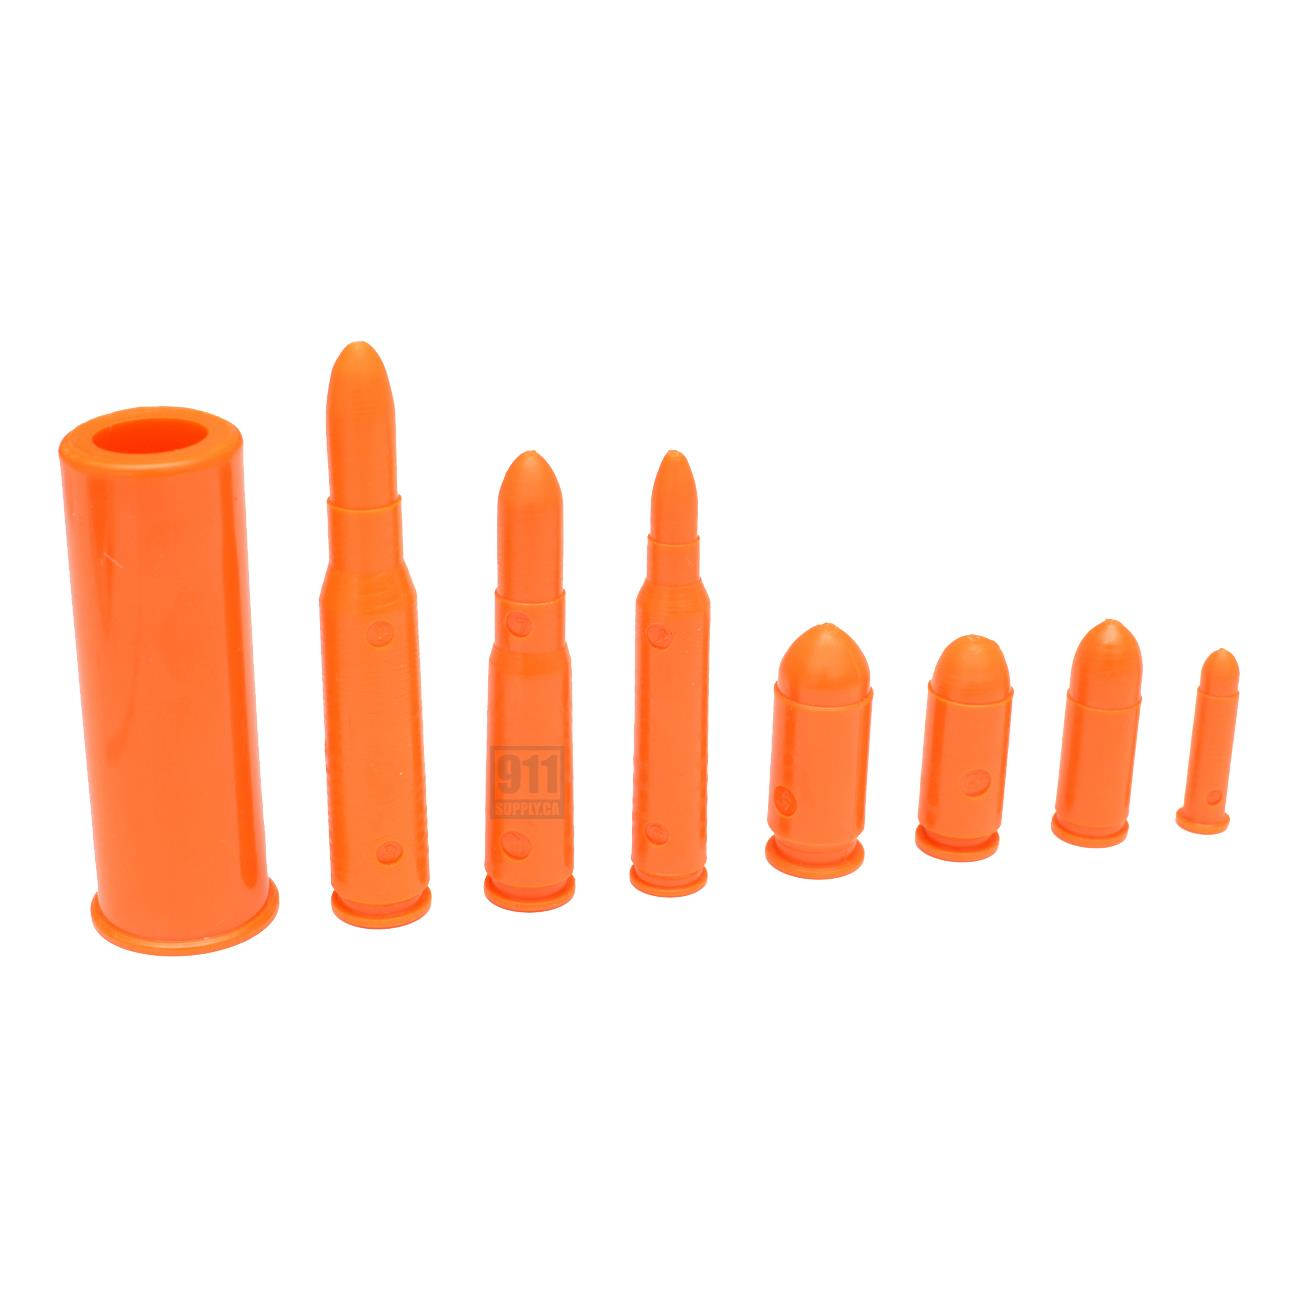 Saf-T-Trainer Dummy Rounds | 911supply.ca